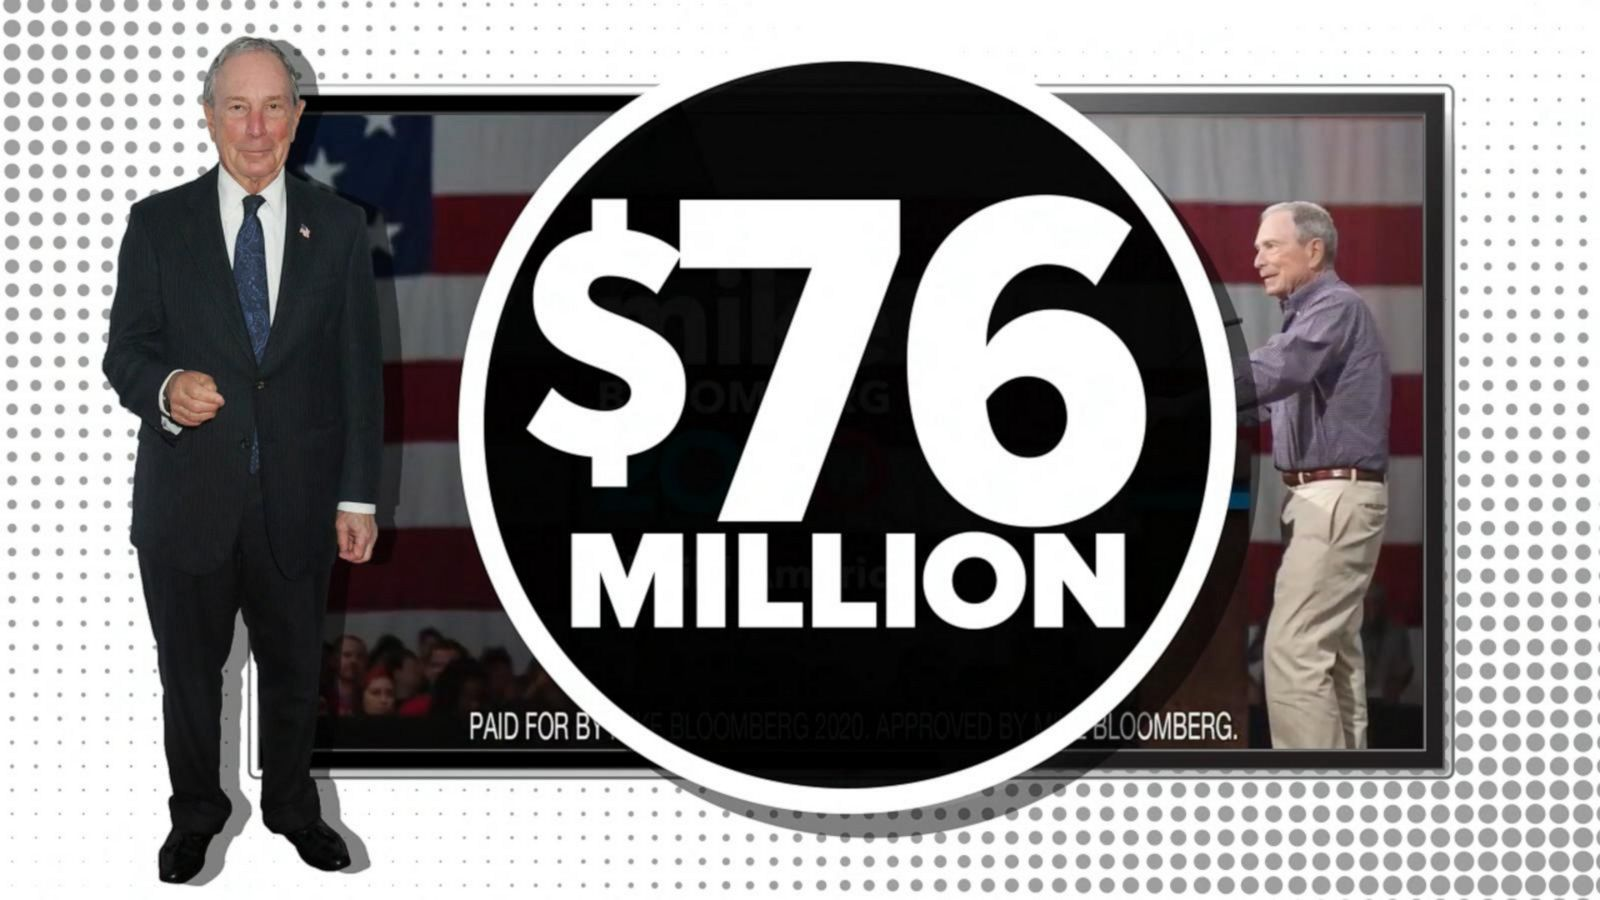 Do You Buy That… Spending A Lot Of Money On Ads Can Help Win the Democratic Nomination?